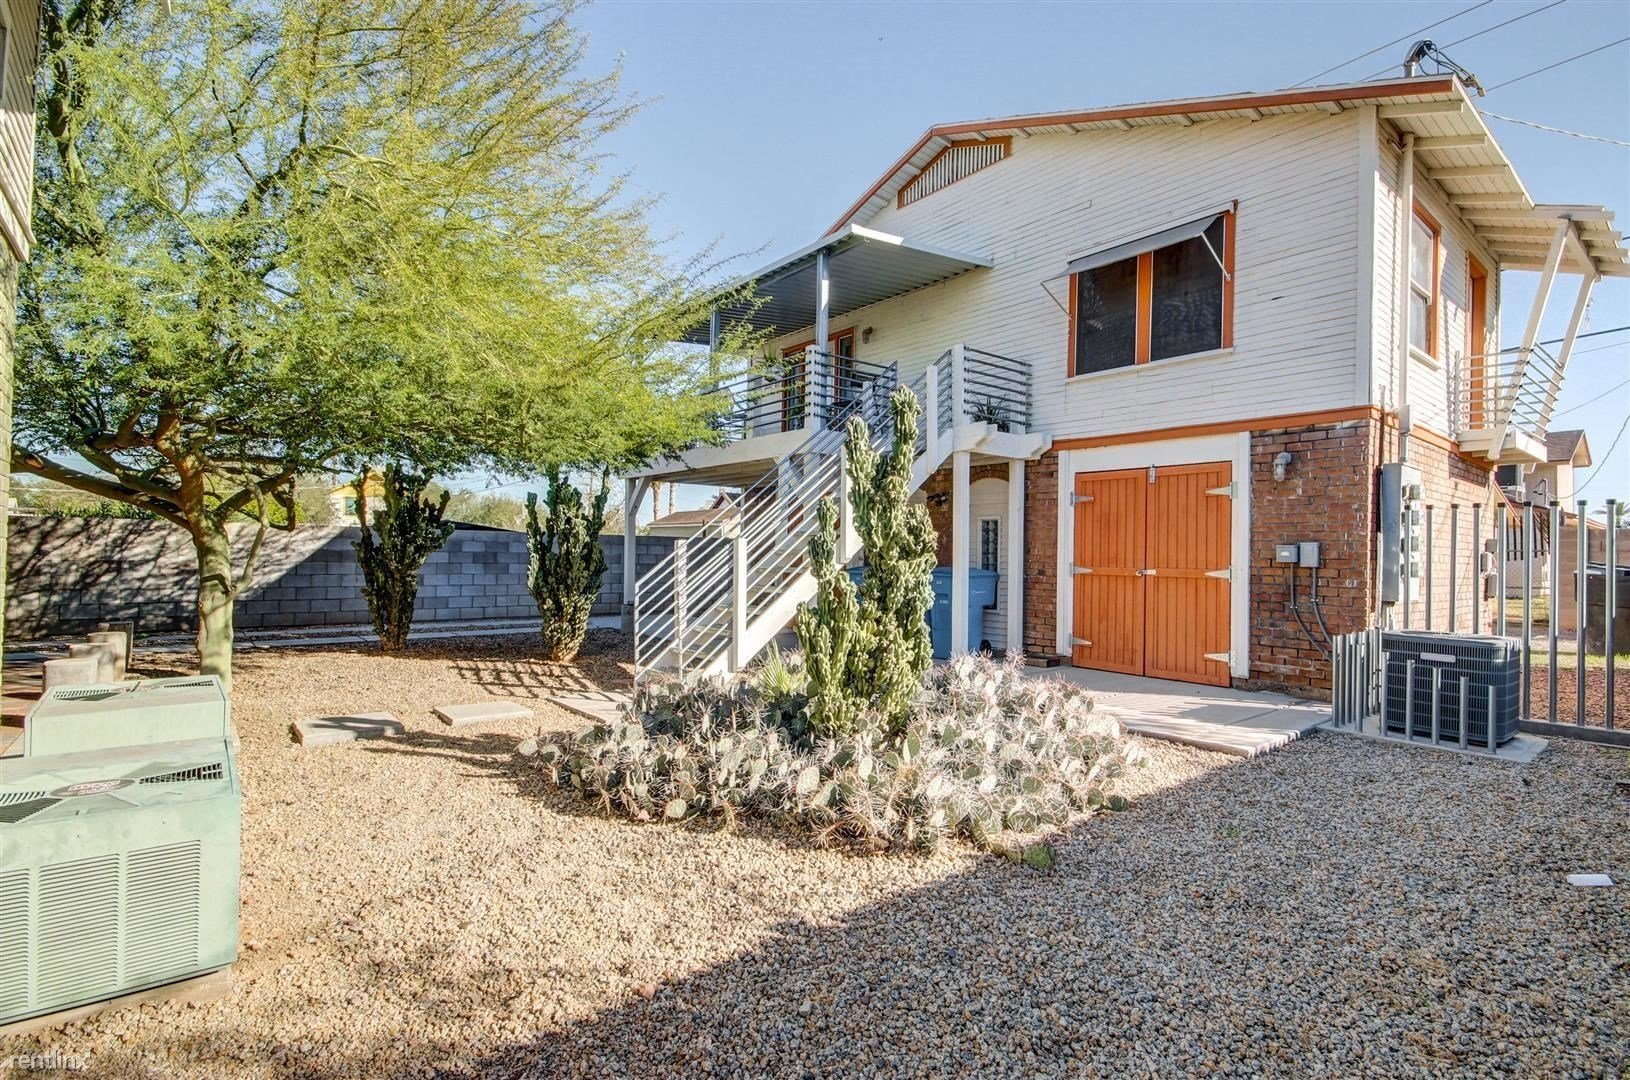 Best 2227 N 9Th St Phoenix Az 85006 1 Bedroom Apartment For With Pictures